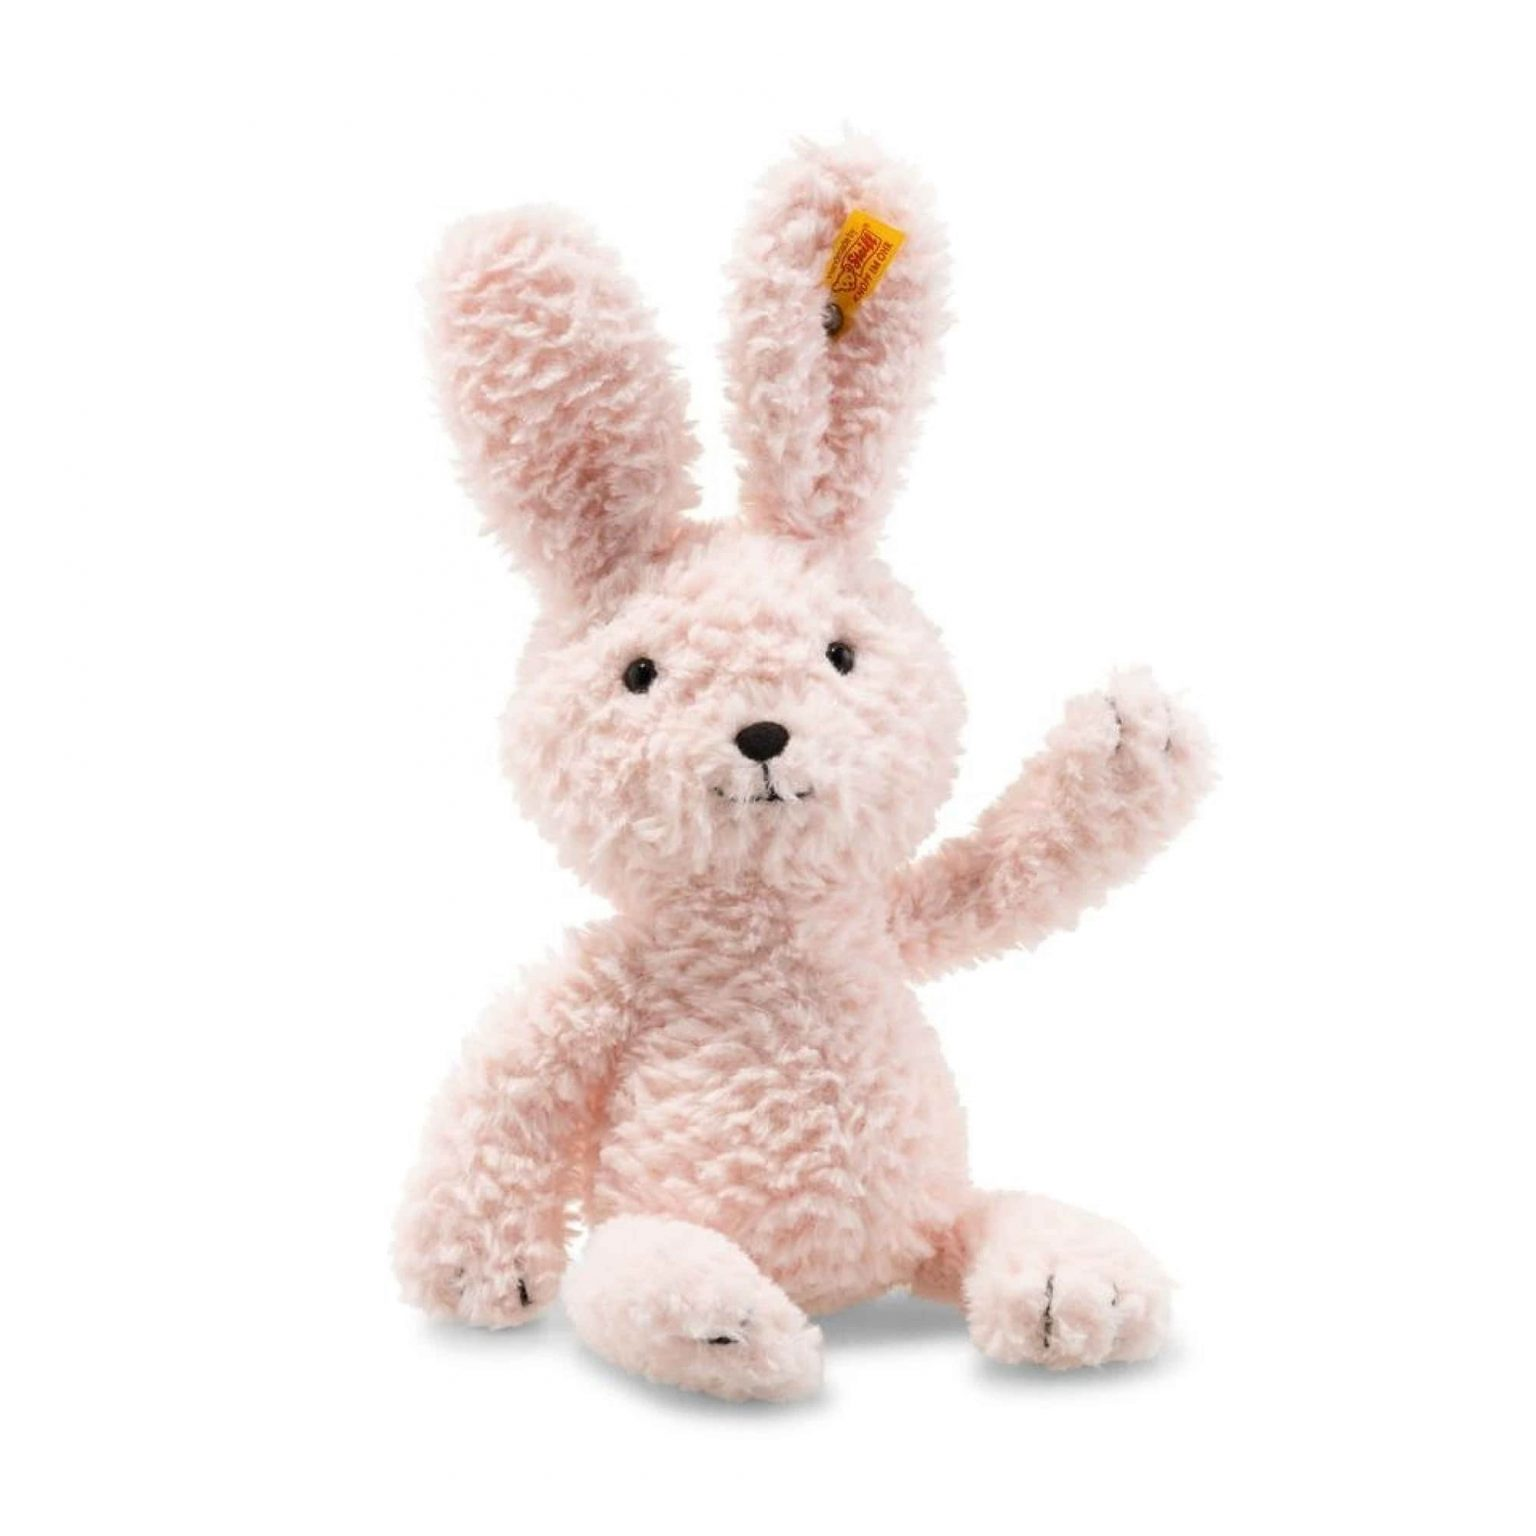 Soft Cuddly Friends Candy Rabbit Steiff Teddy Bear Mary Shortle